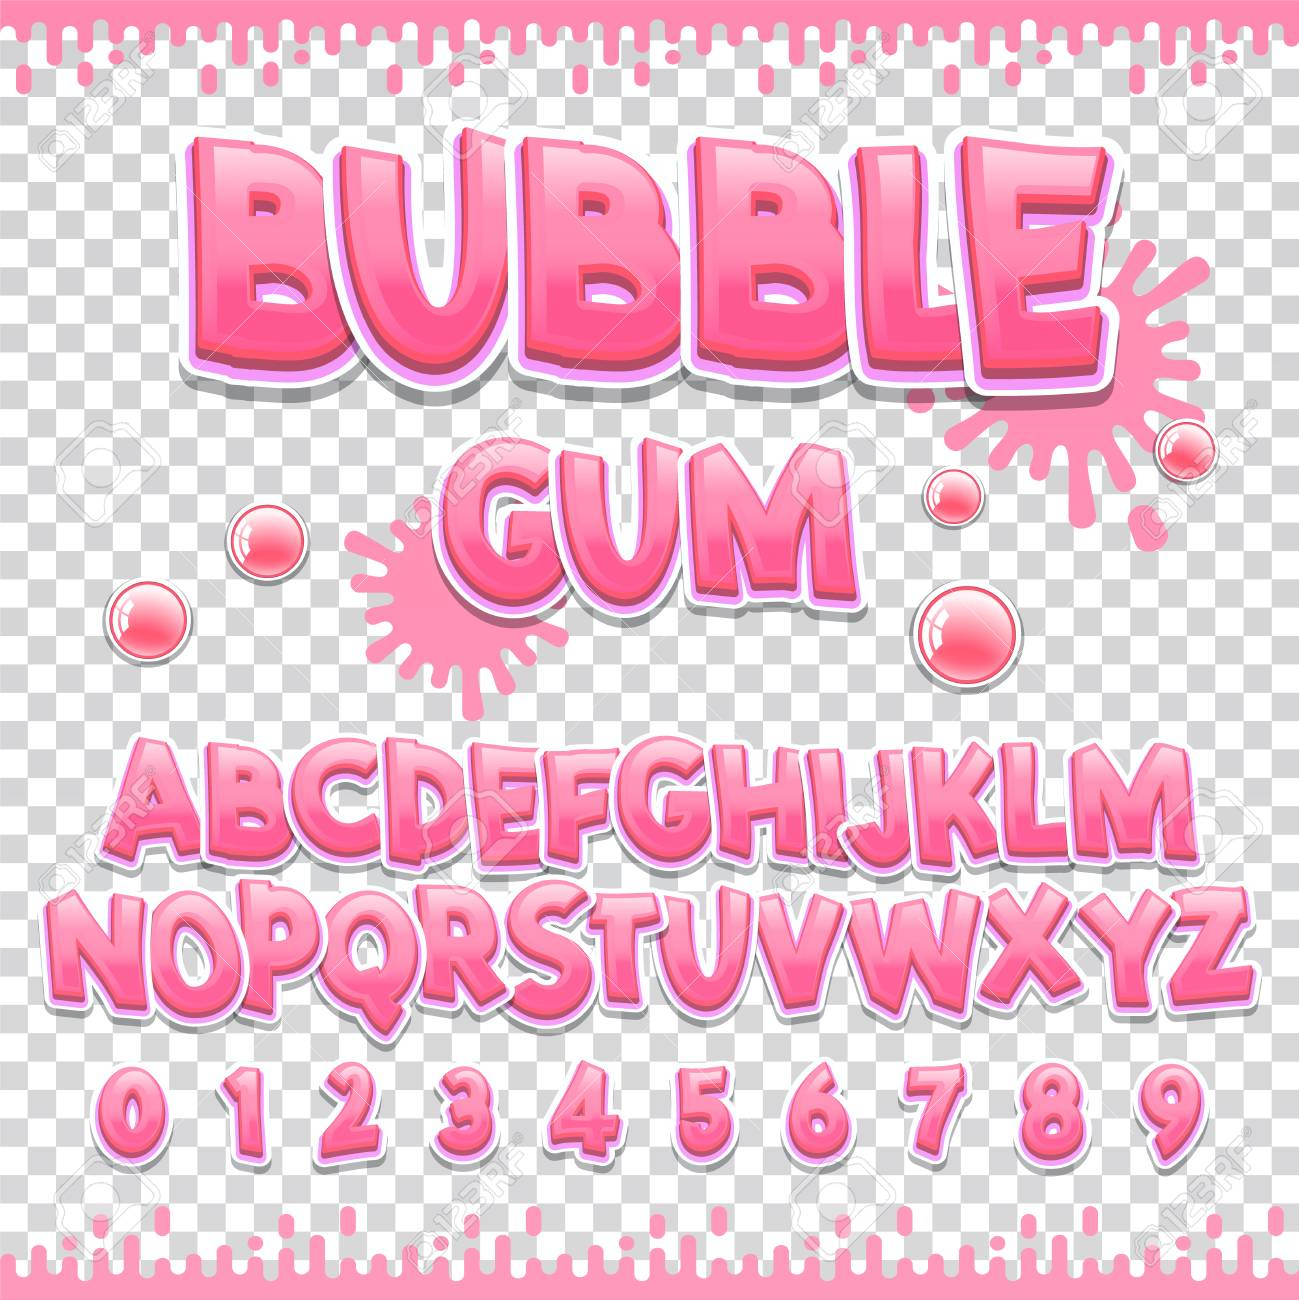 Bubble gum Latin font design  Sweet abc letters and numbers